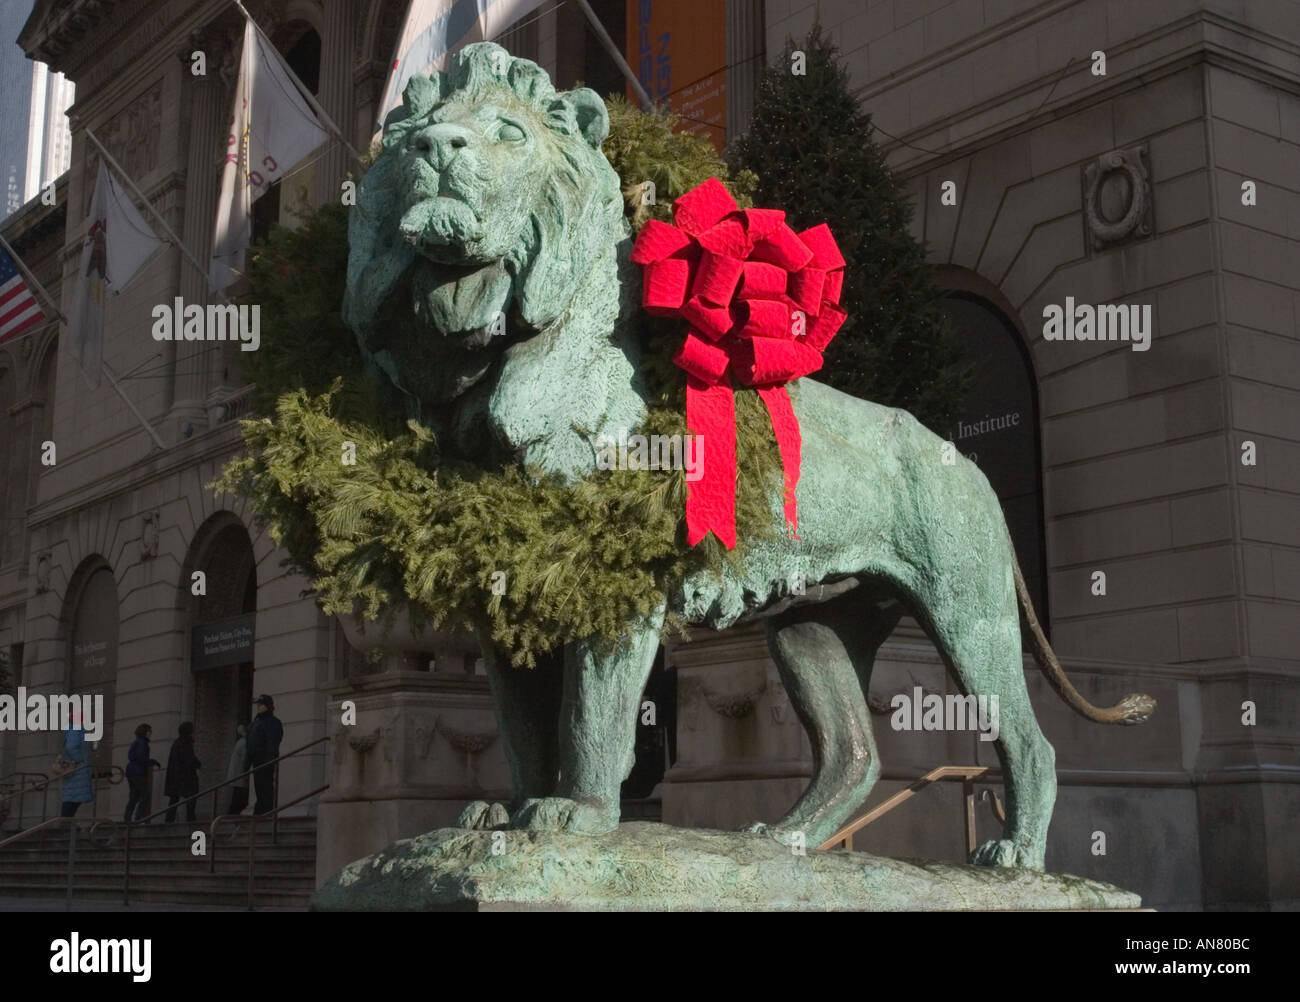 statue of lion with christmas wreath art institute of chicago